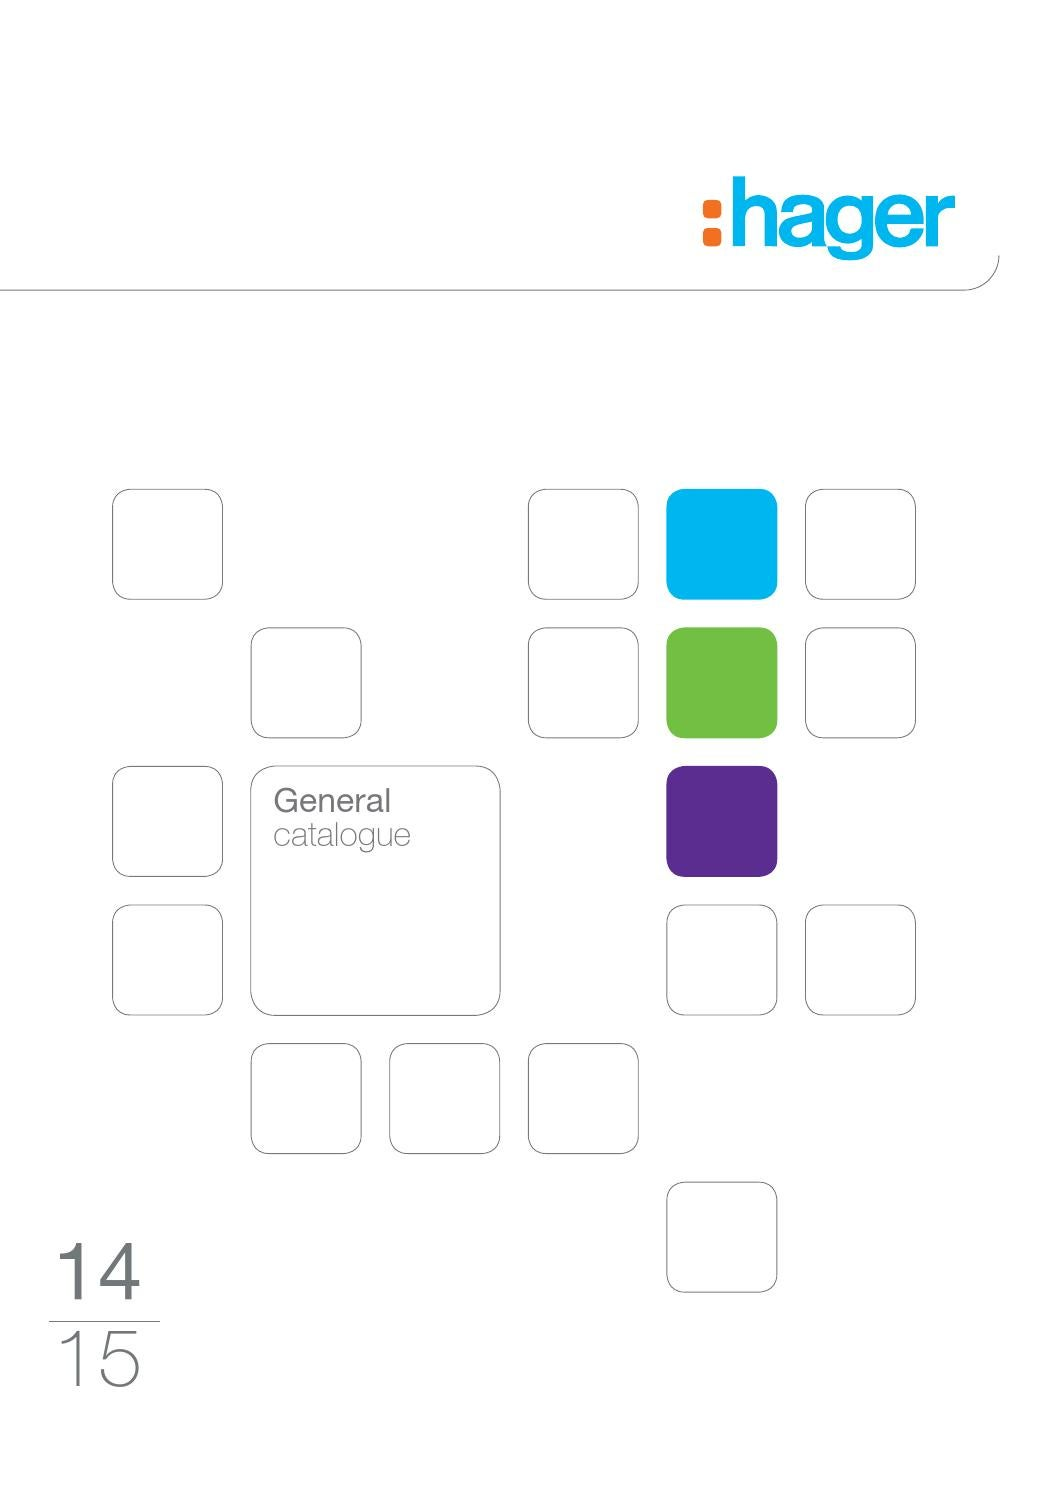 hager general catalogue 2014 2015 by issuu